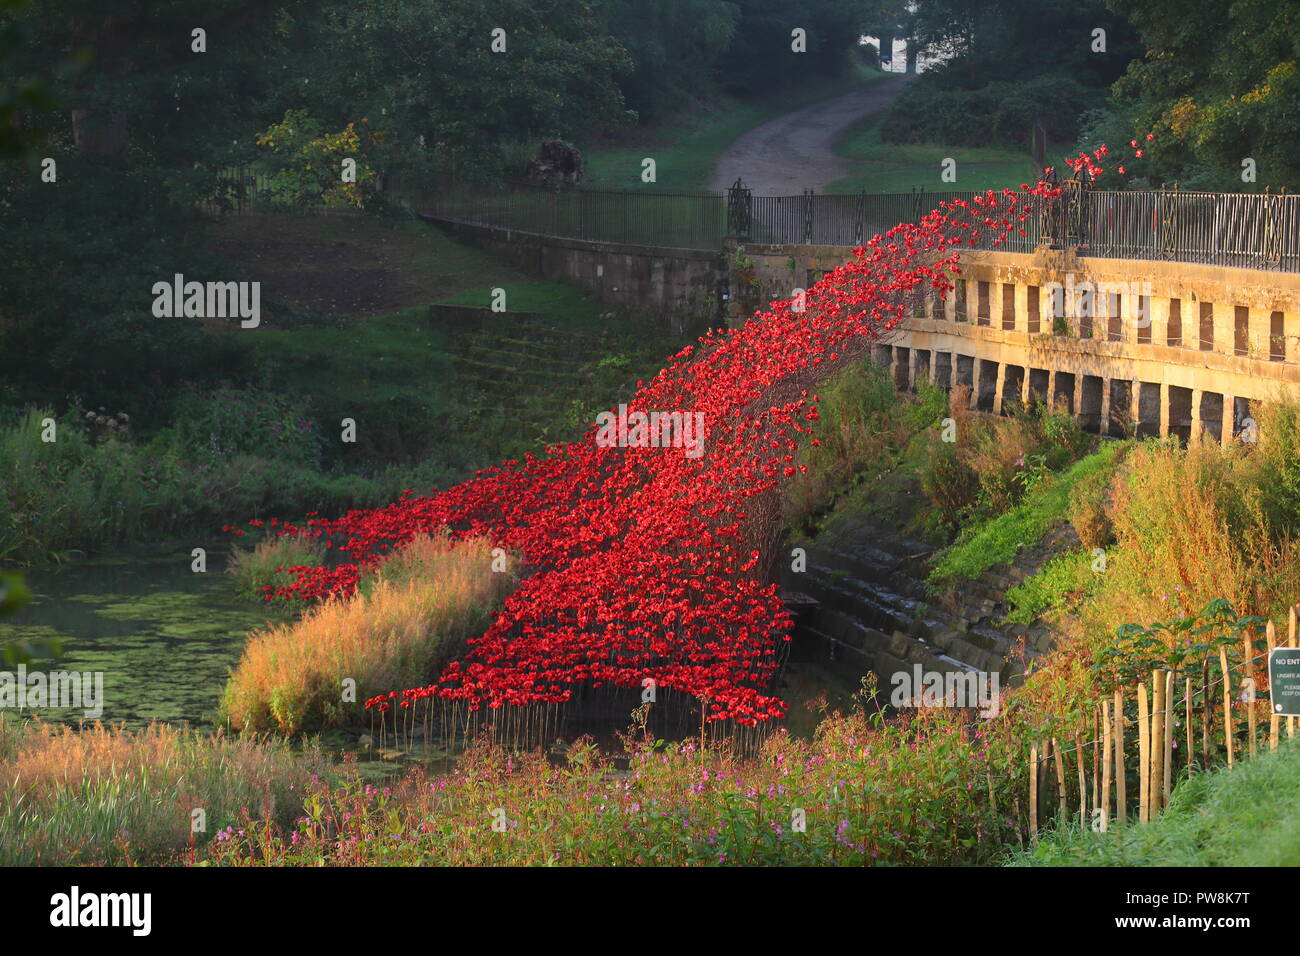 Poppies Wave and Weeping Window Sculpture at Yorkshire Sculpture Park - Stock Image